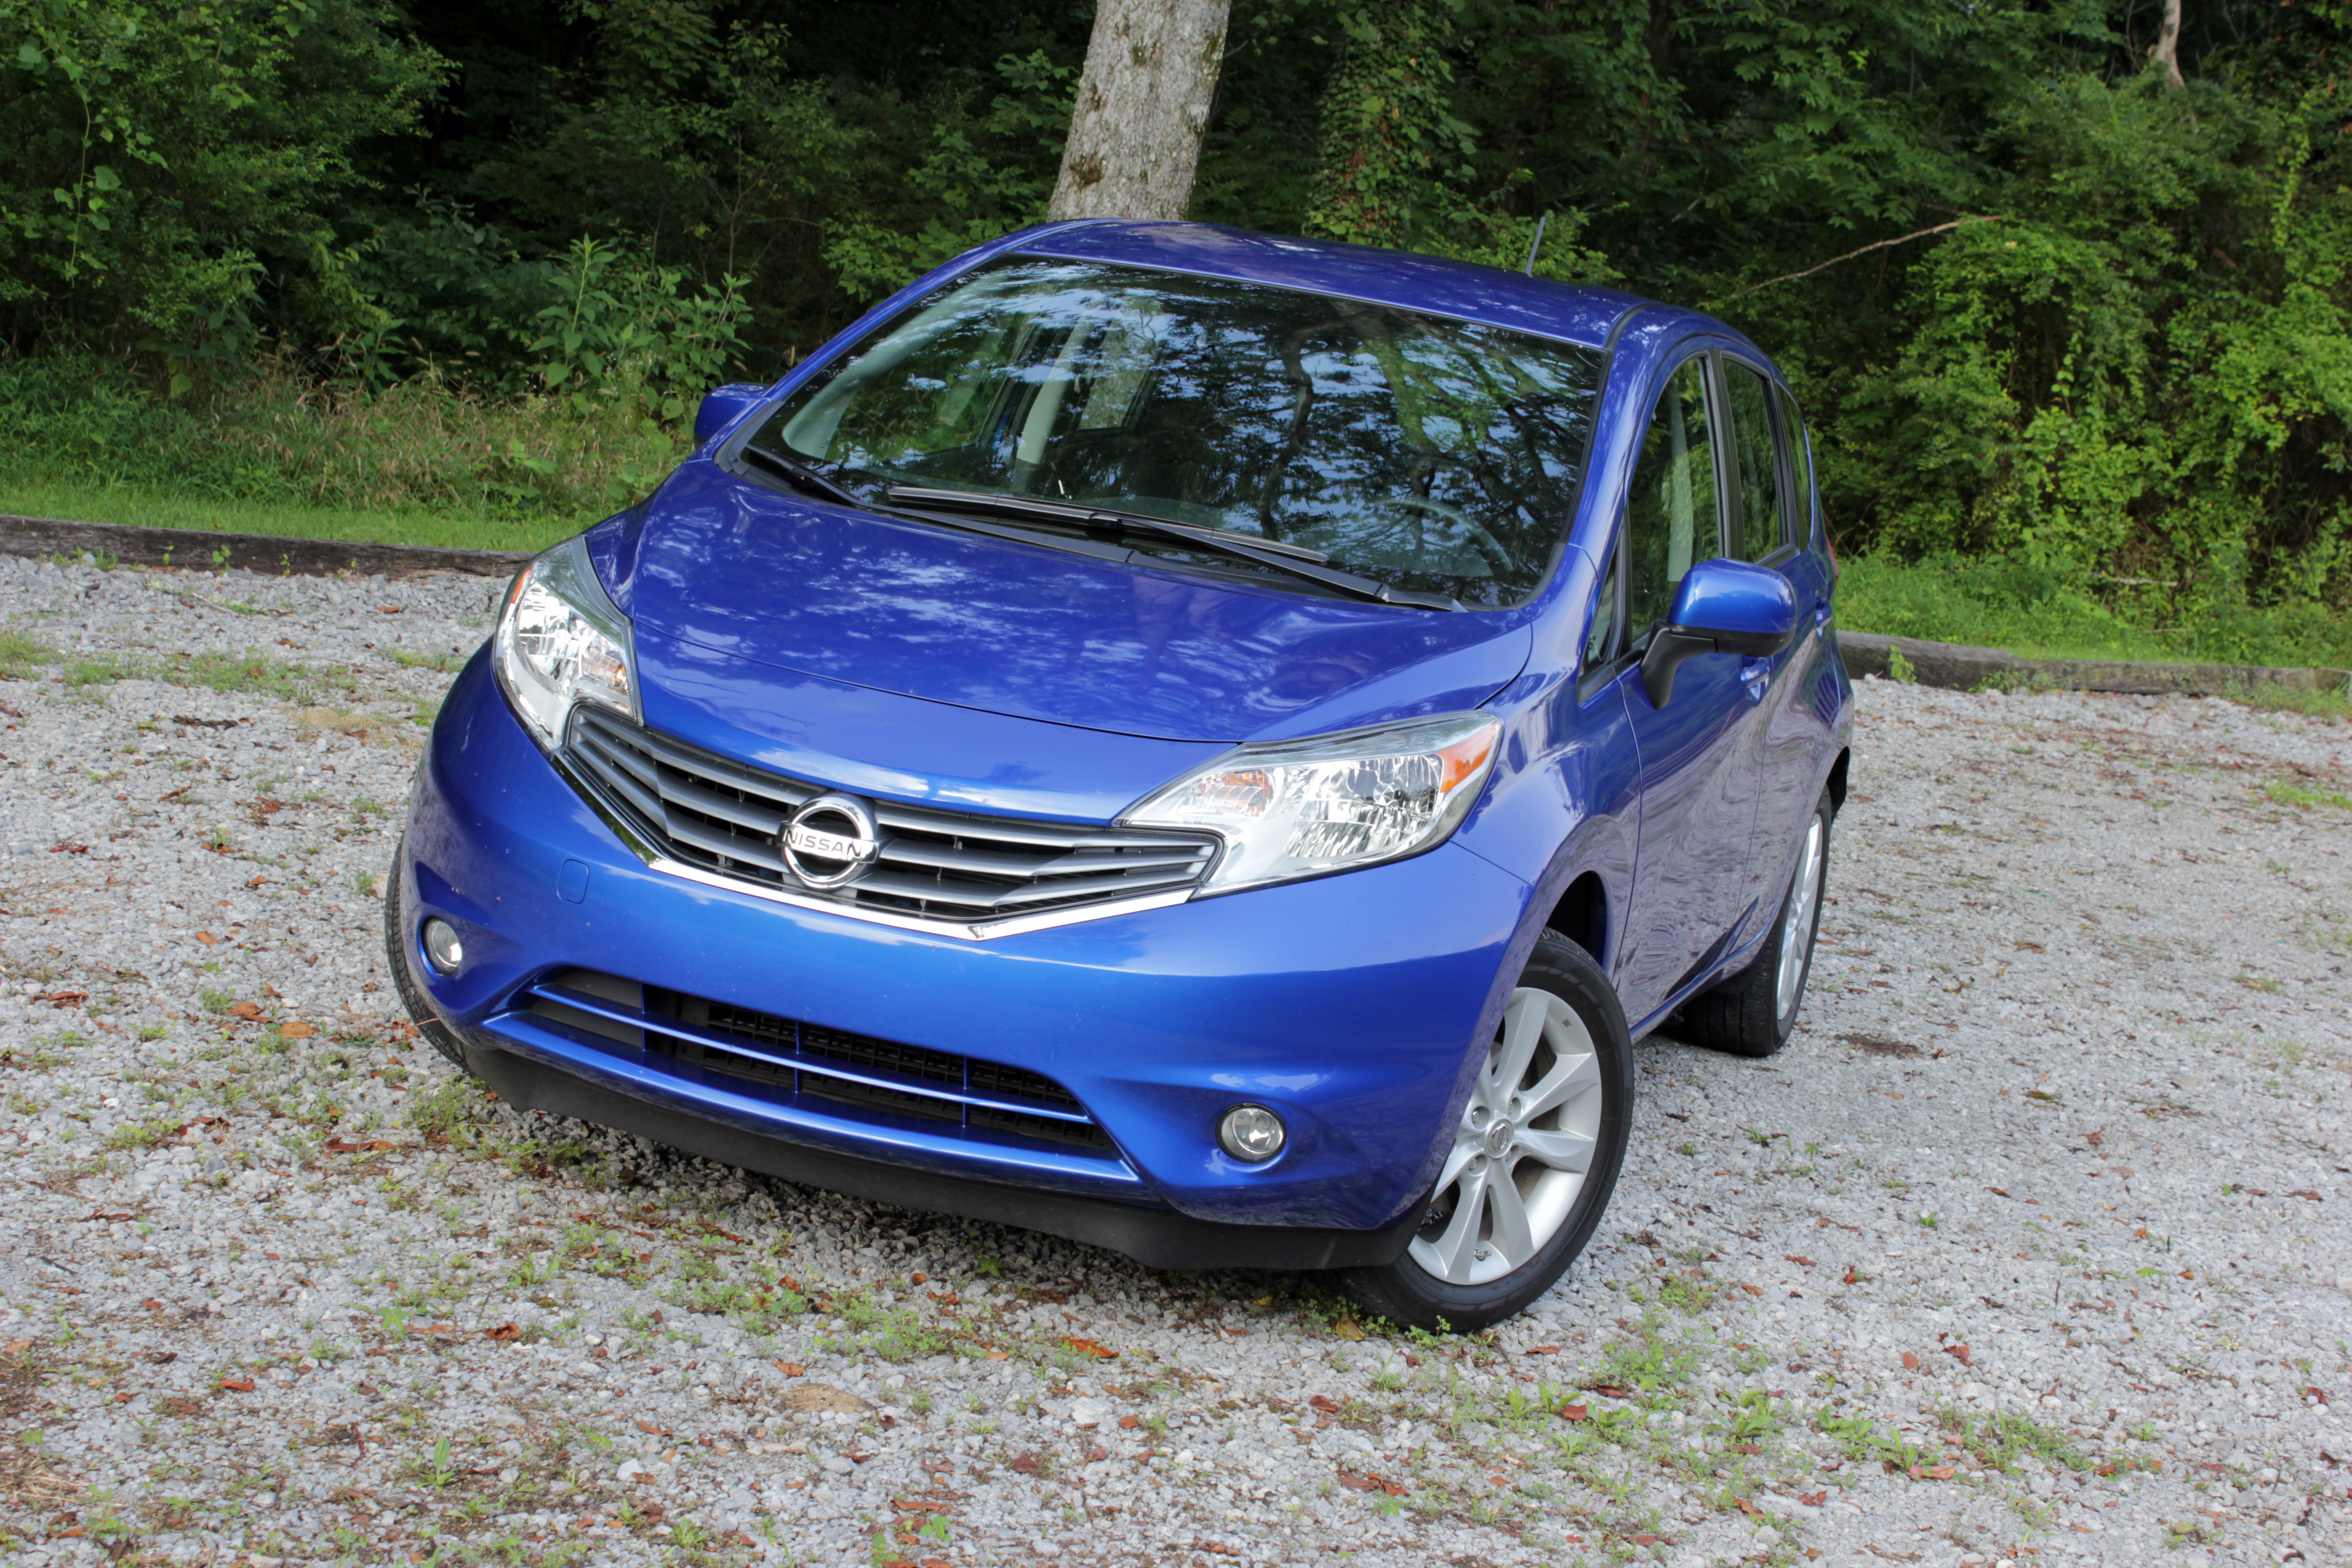 2014 Nissan Versa Note Review   Driven | Top Speed. »